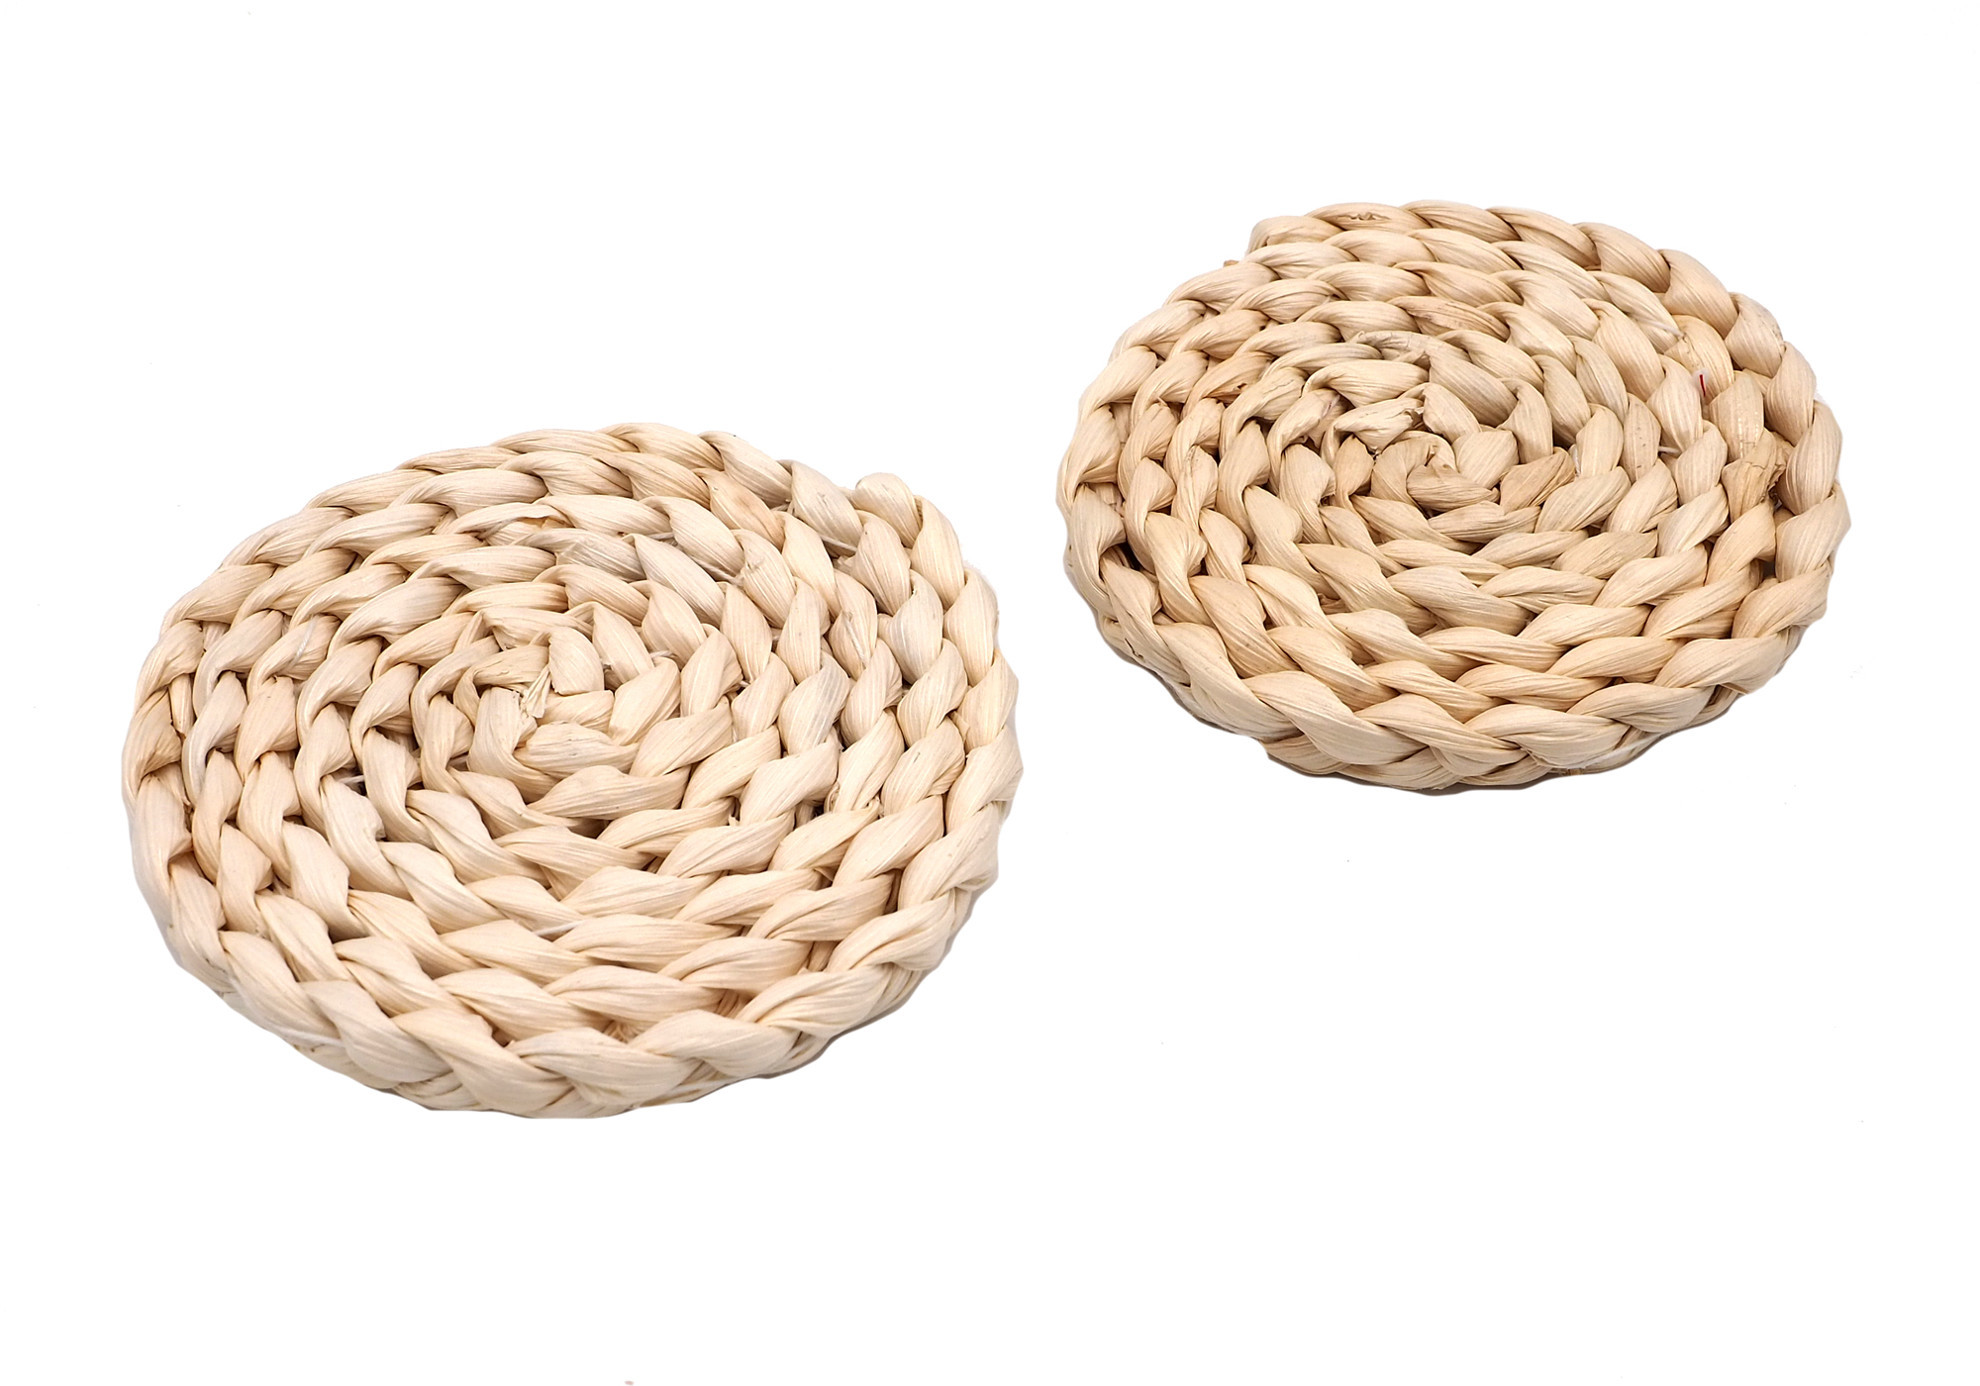 Picture of Round Placemats (2) Handmade from Natural Eco-Friendly Woven Corn Husk for Home Decoration. 4.4 inch (11cm)